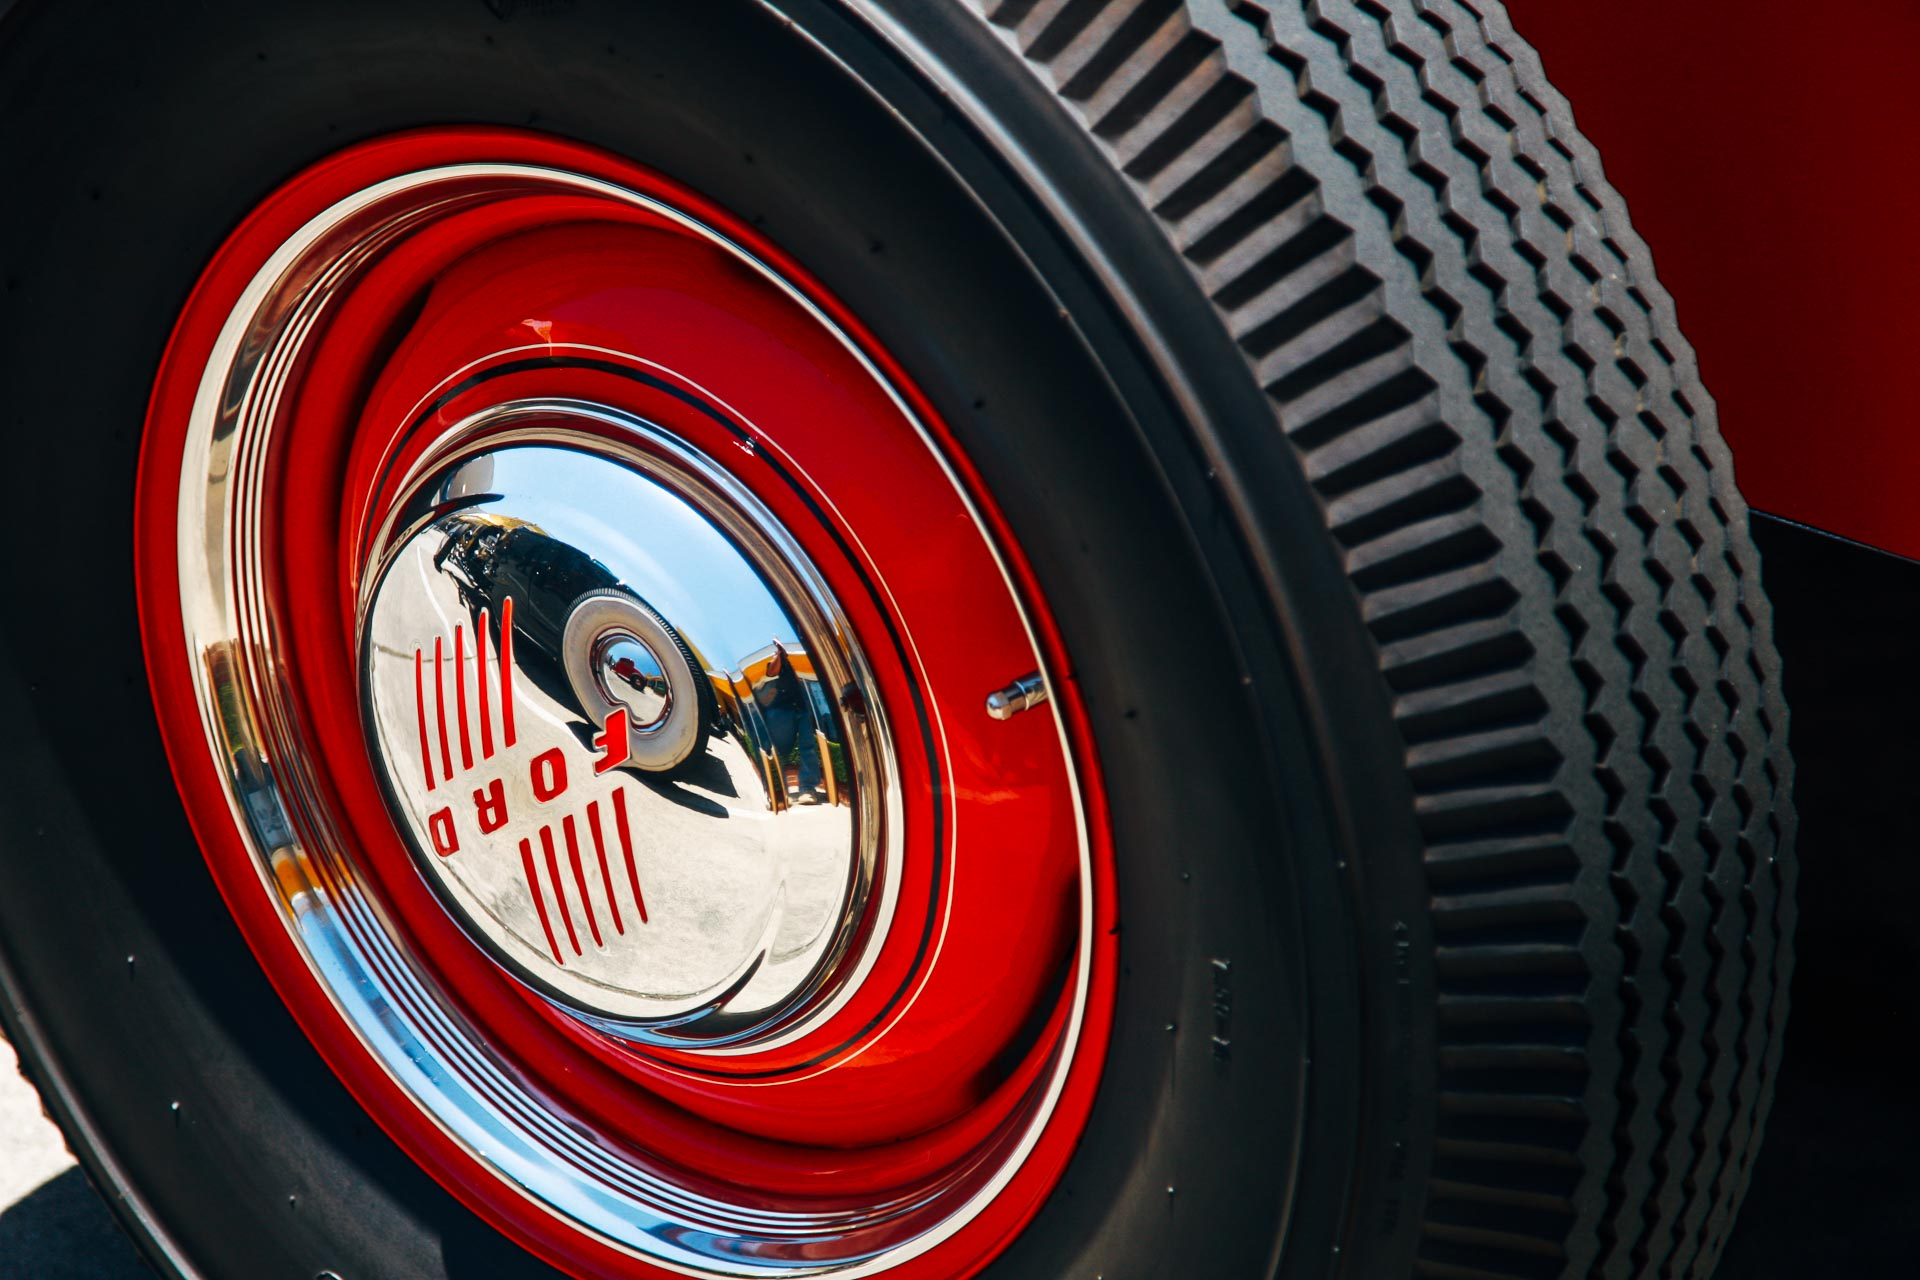 Bias Ply tires on a Ford hot rod